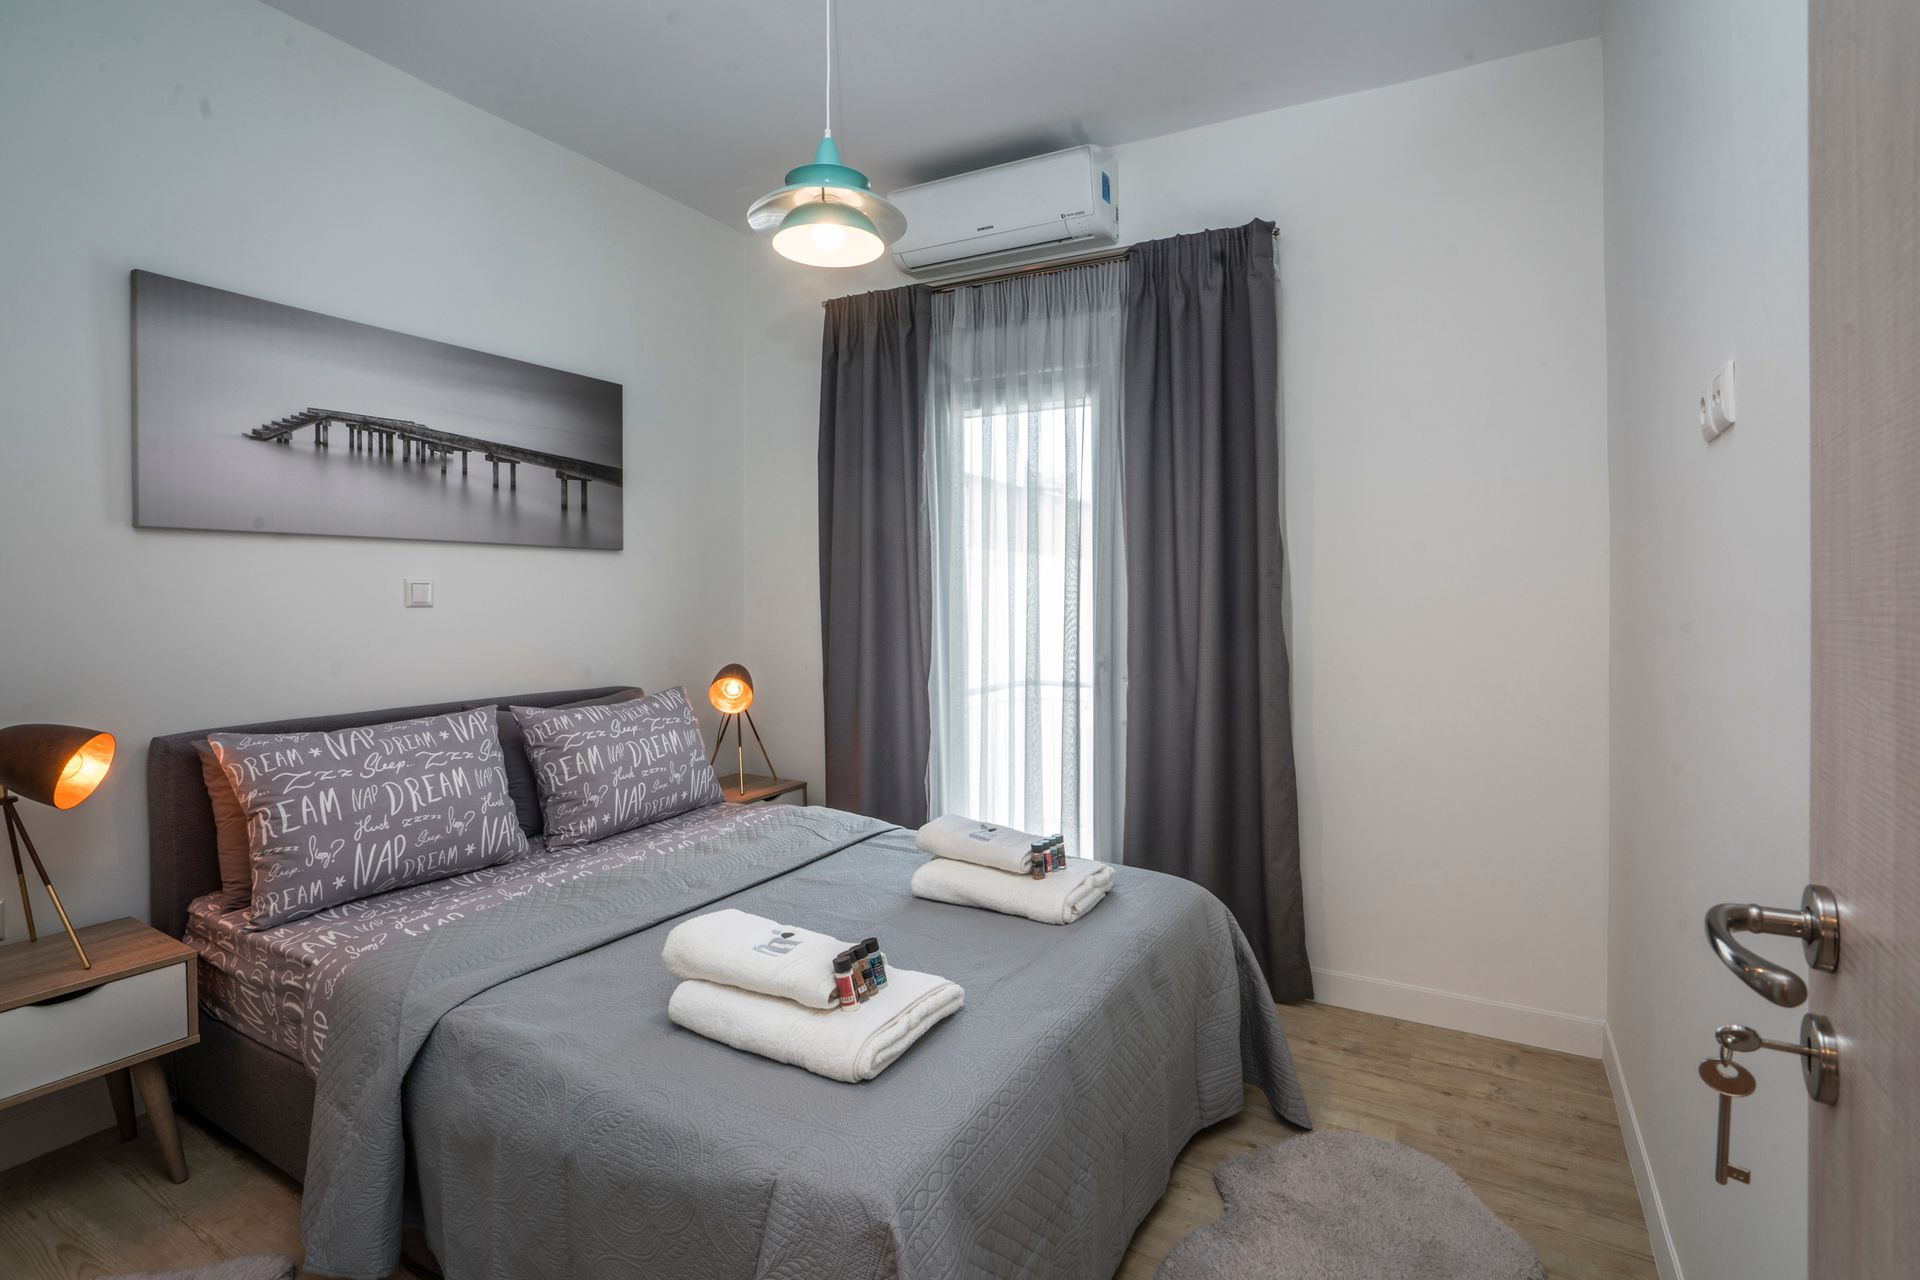 Athens Morum City Apartments Formionos - Αθήνα ✦ 2 Ημέρες (1 Διανυκτέρευση) ✦ 2 άτομα ✦ Χωρίς Πρωινό ✦ έως 30/09/2020 ✦ Free WiFi